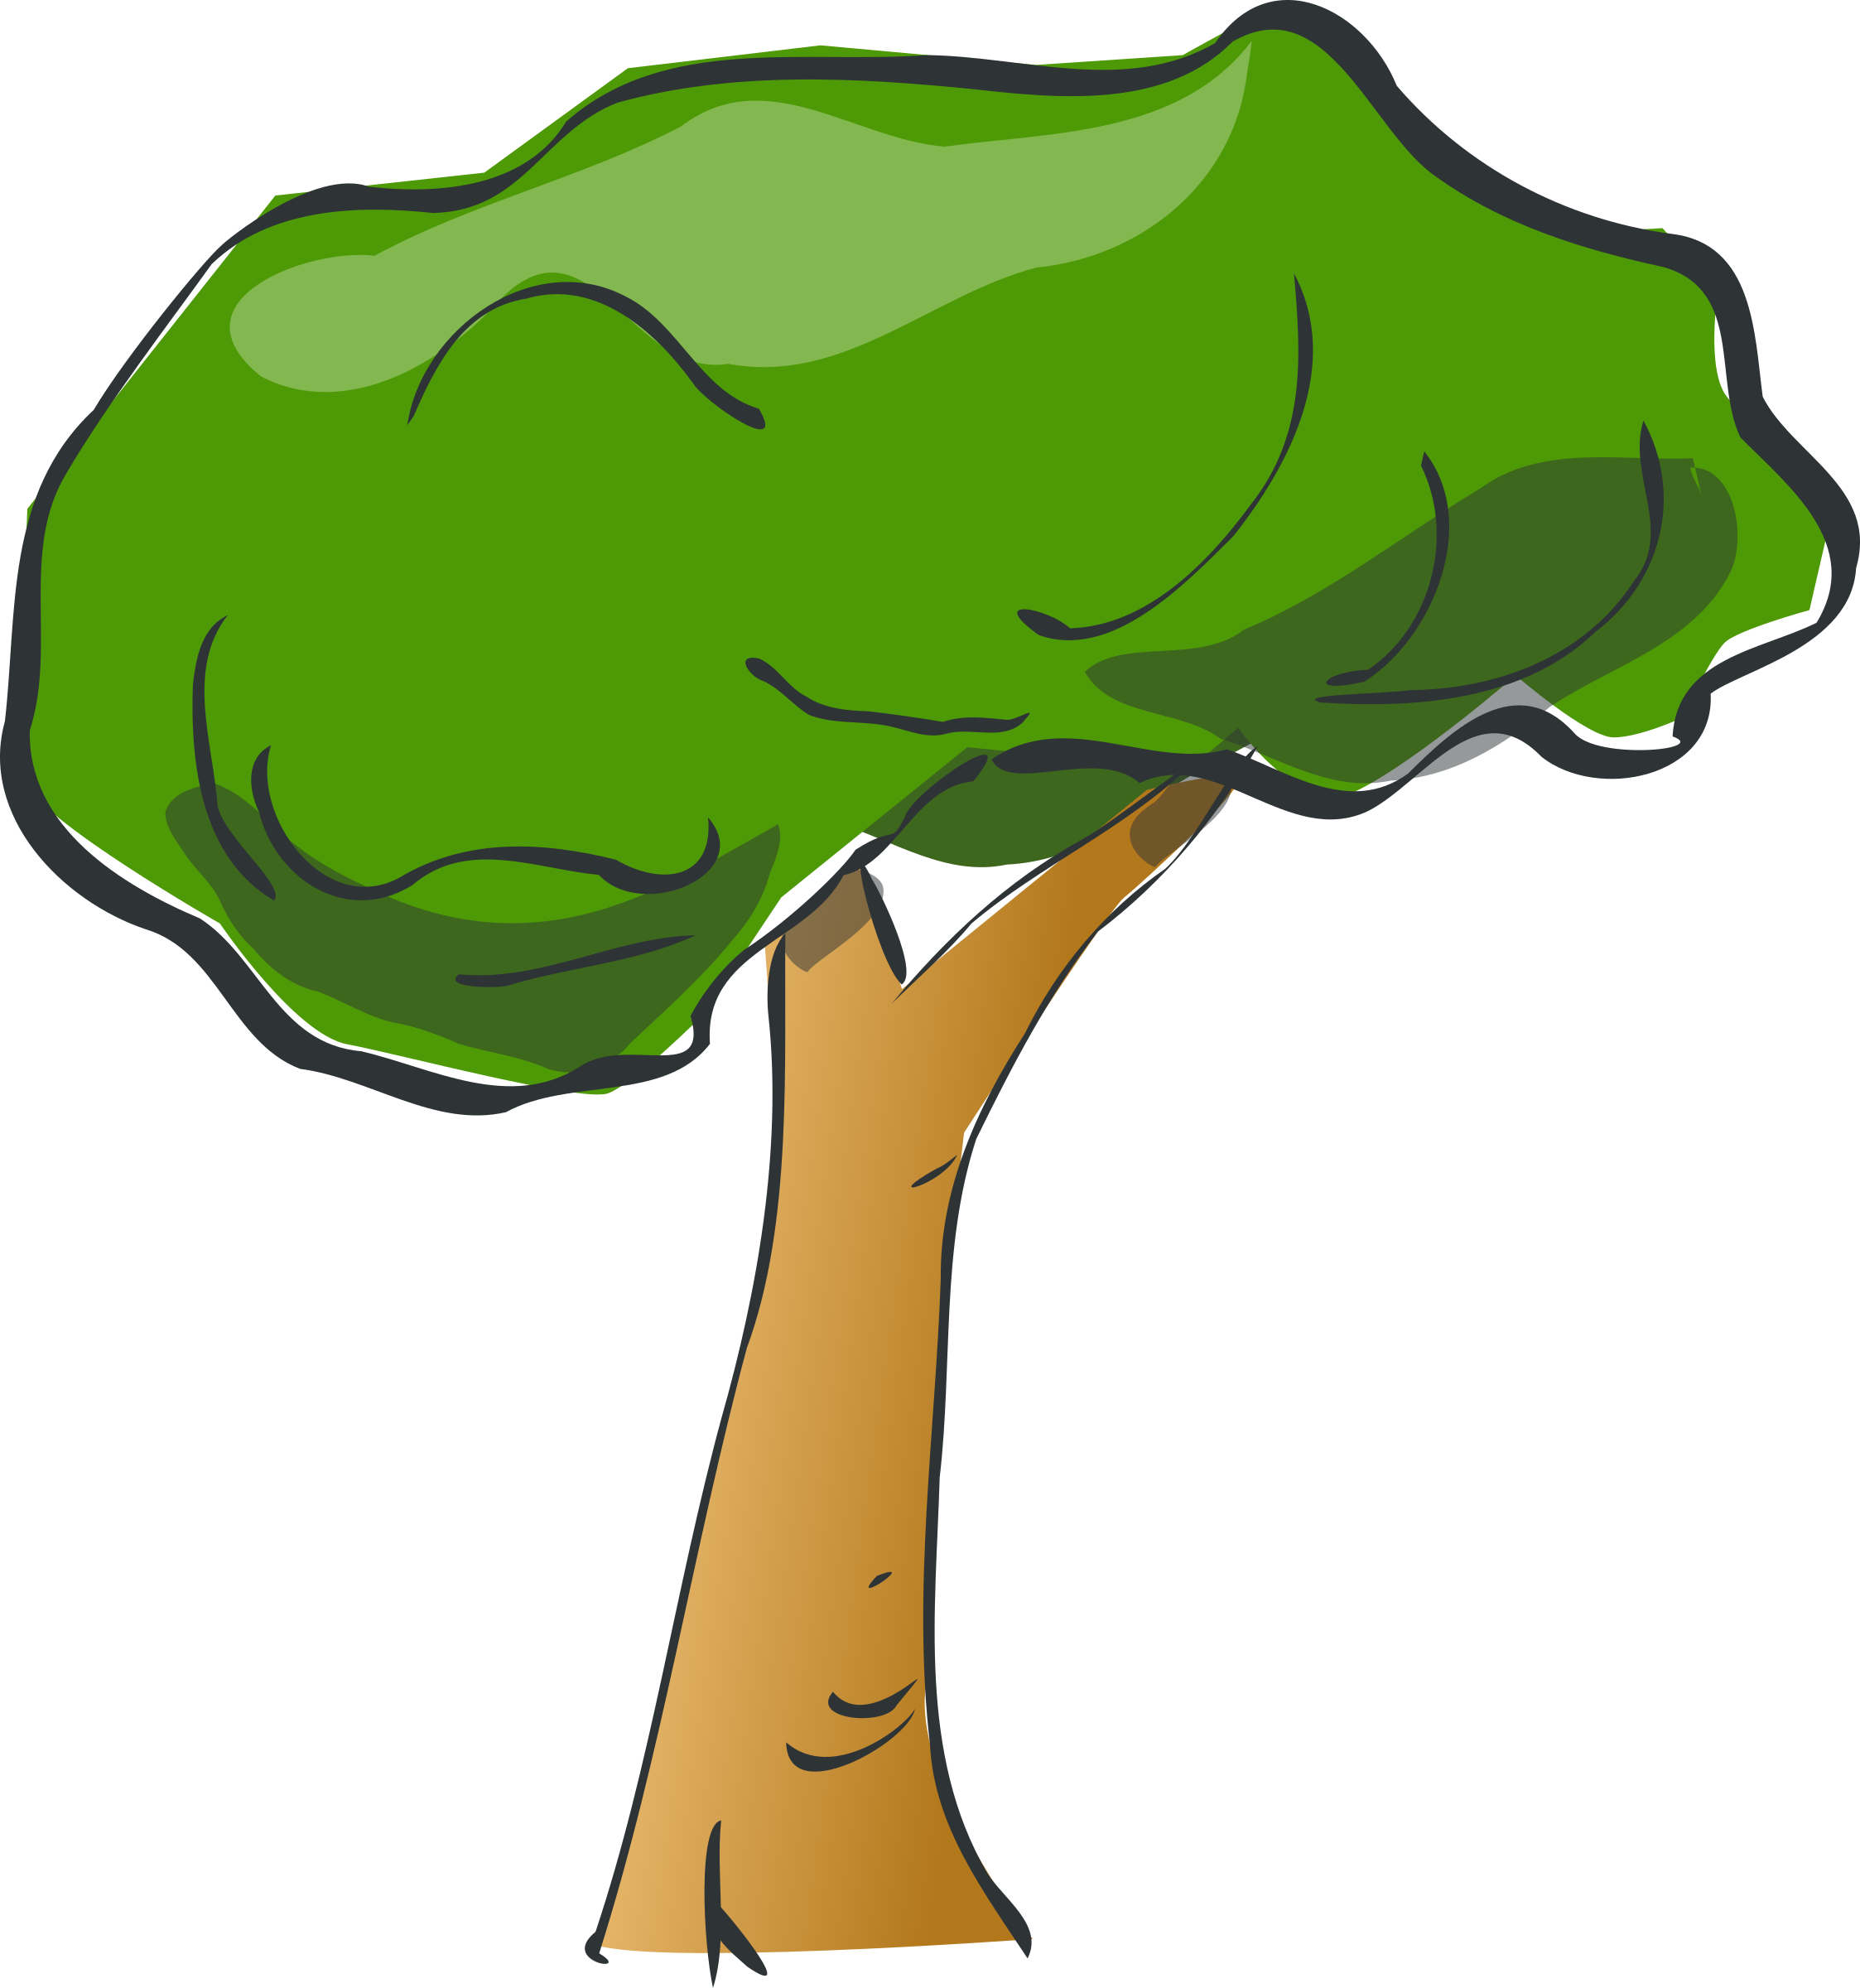 Cartoon trees png. Forest clipart at getdrawings